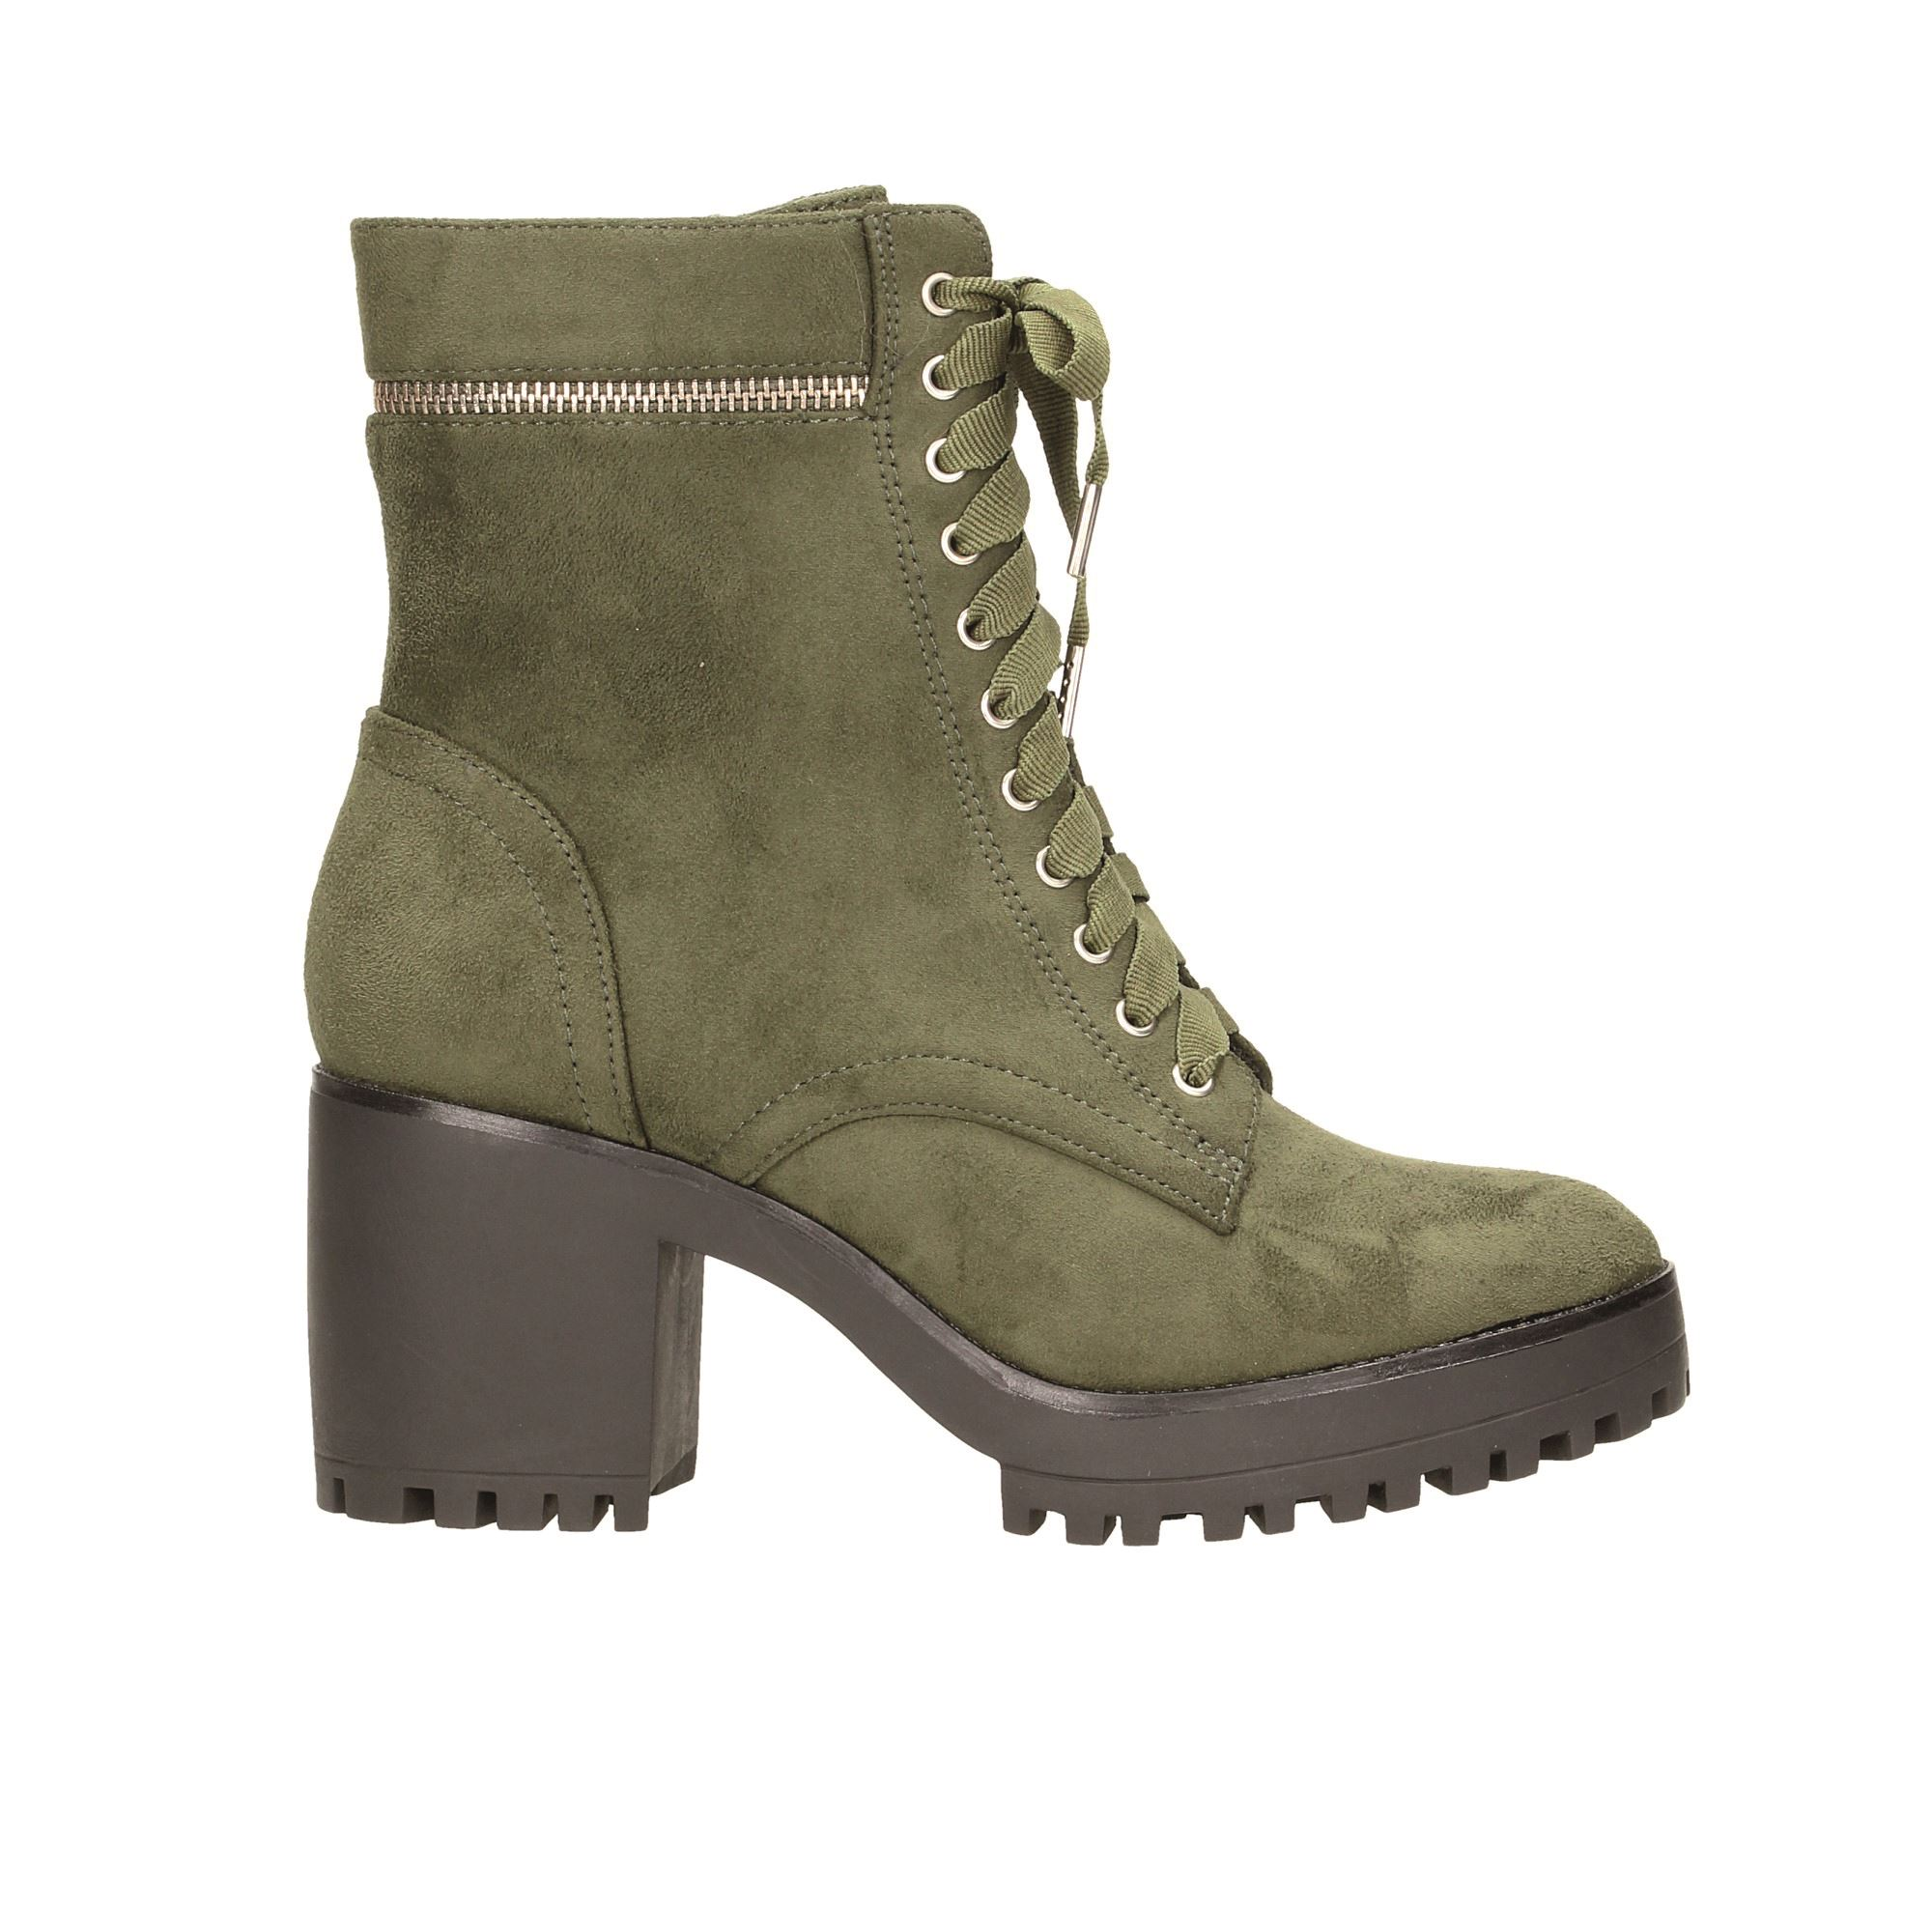 Tata Italia Shoes Woman Stivaletti Olive 26# A5204